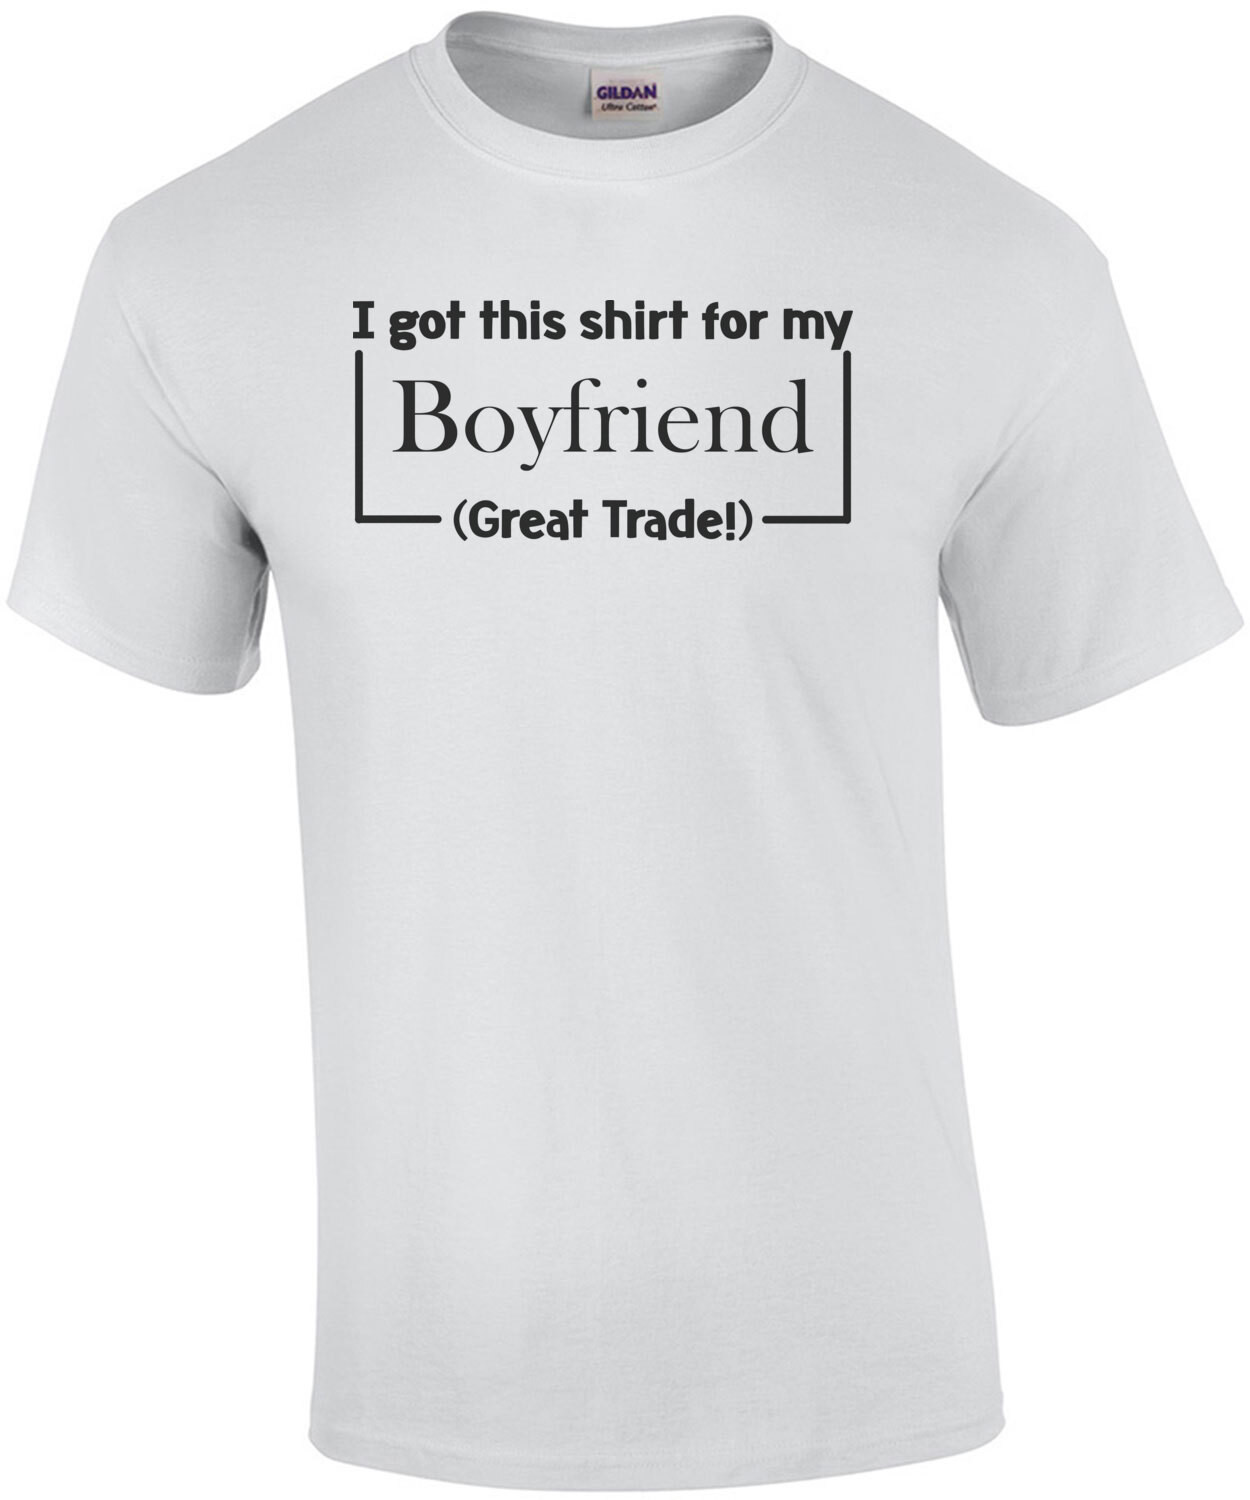 I Got This Shirt For My Boyfriend (Great Trade!) T-Shirt